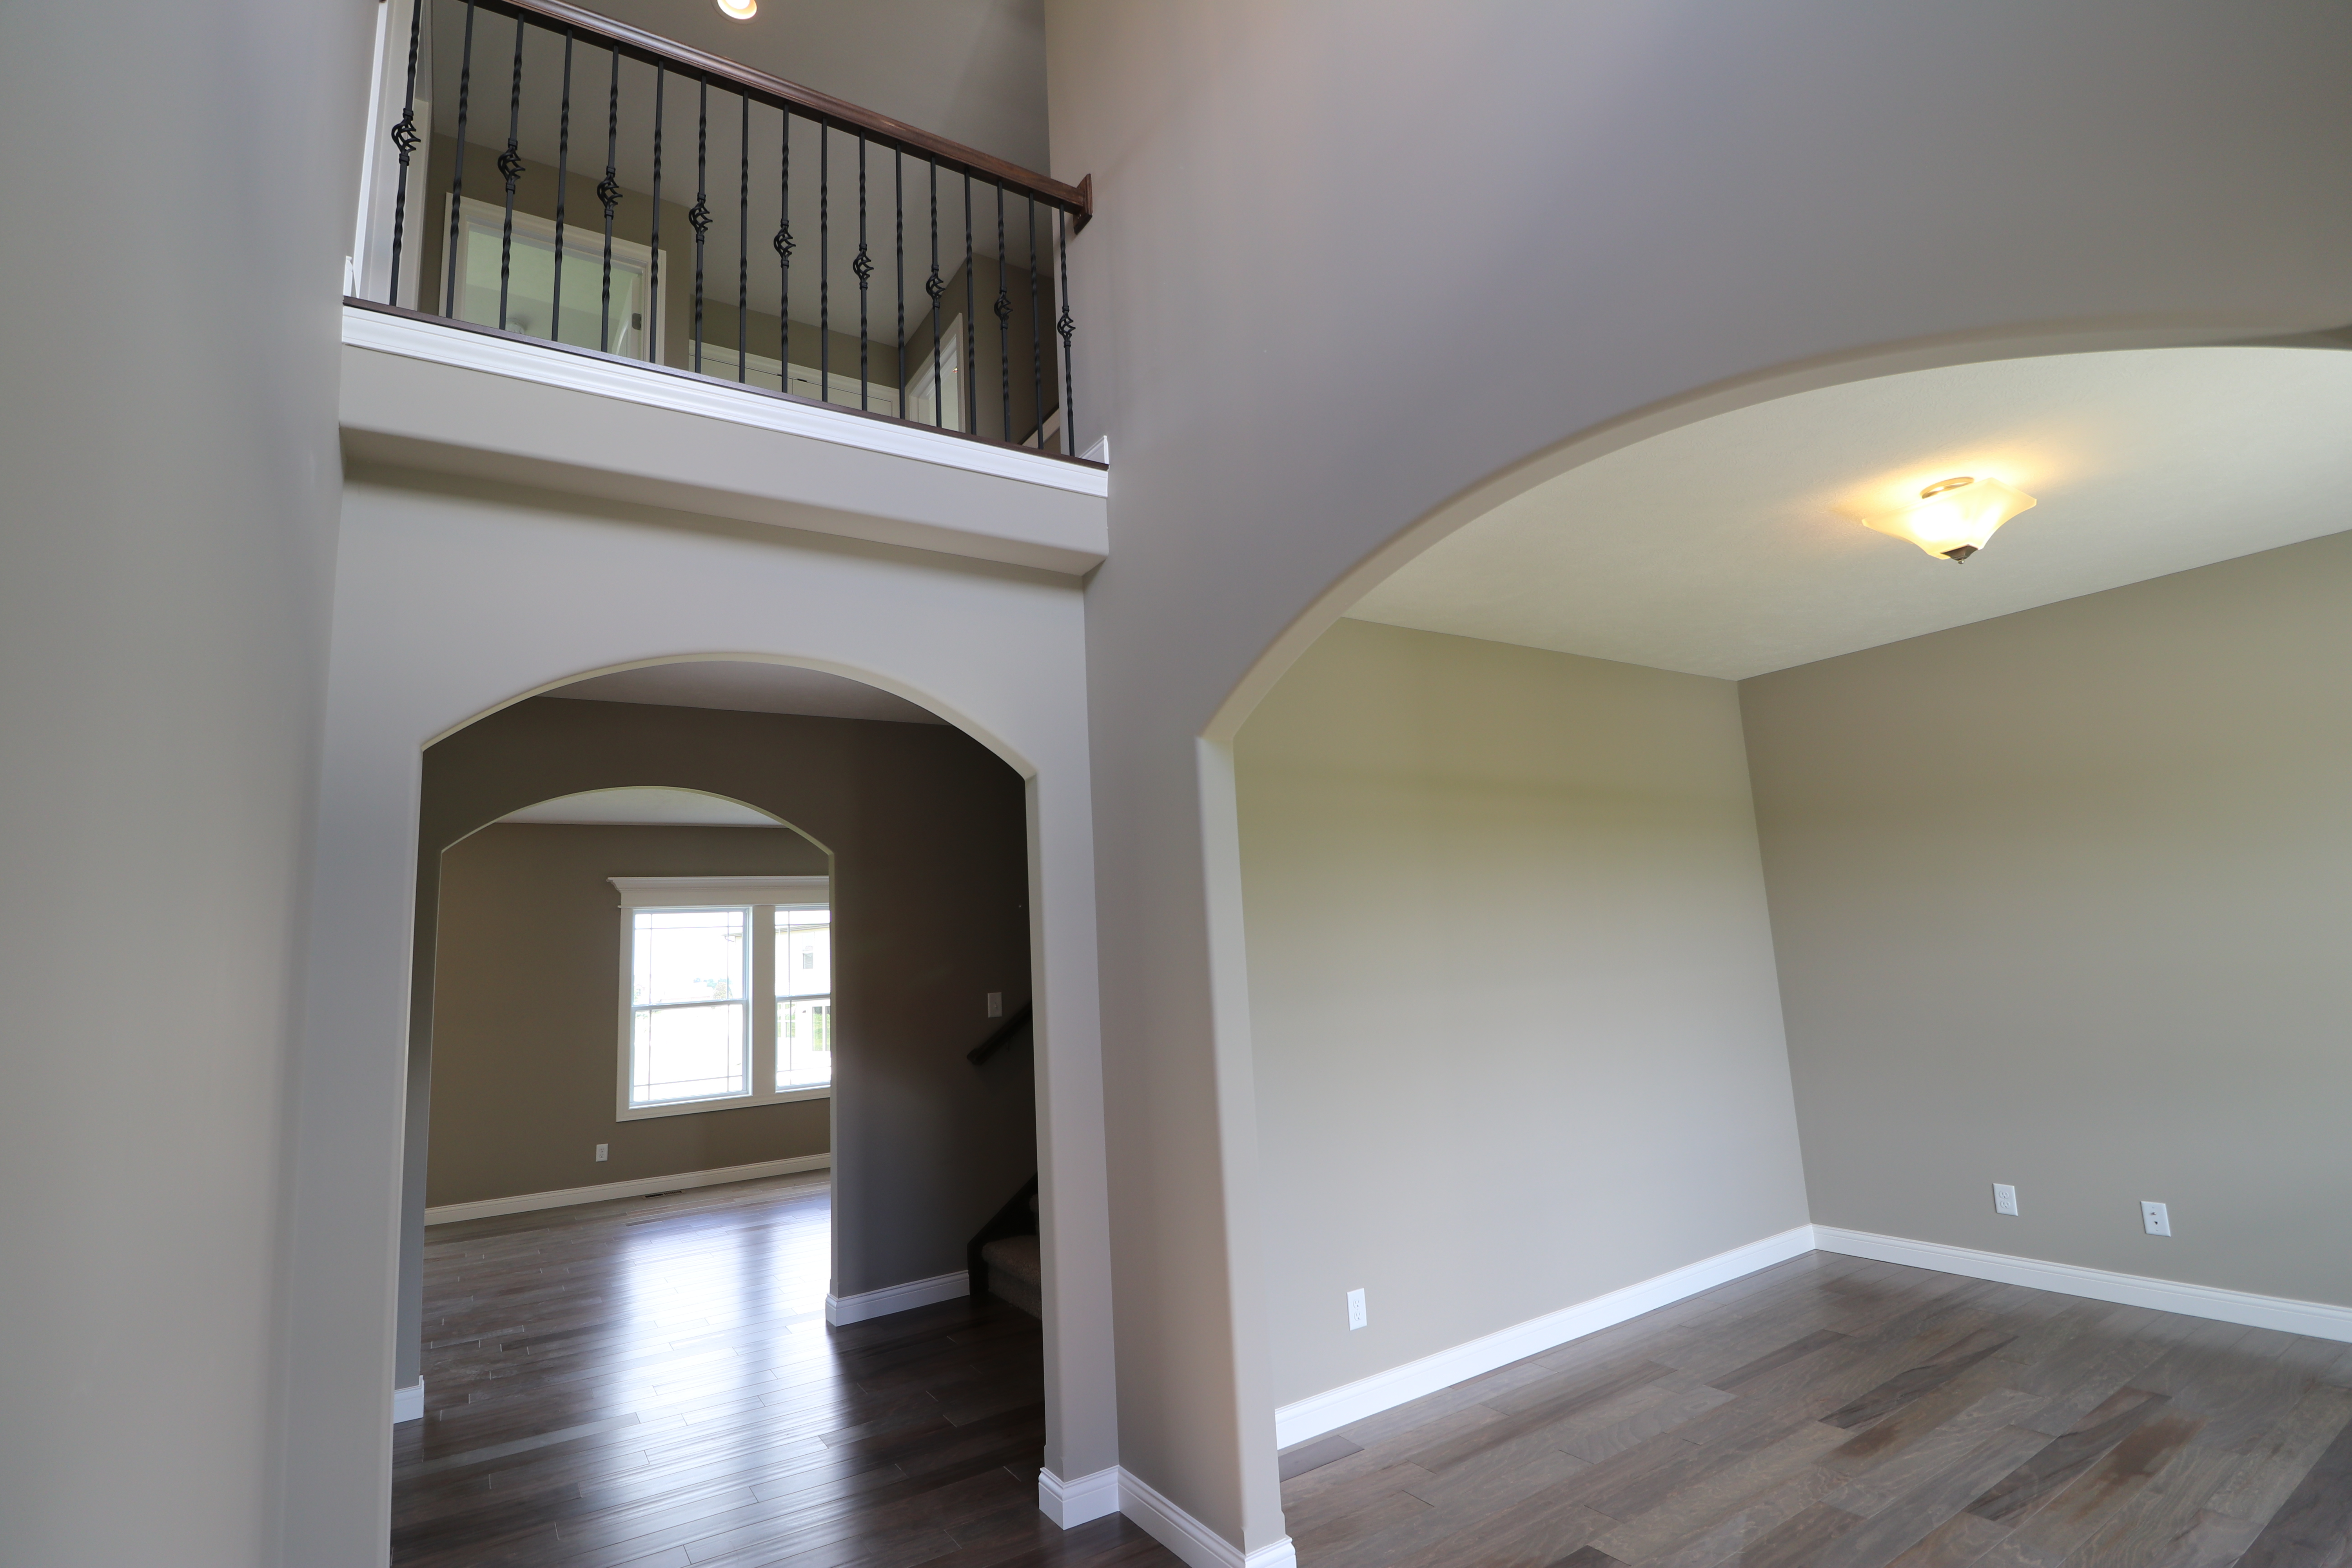 House for sale in the Dunlap peoria area reception